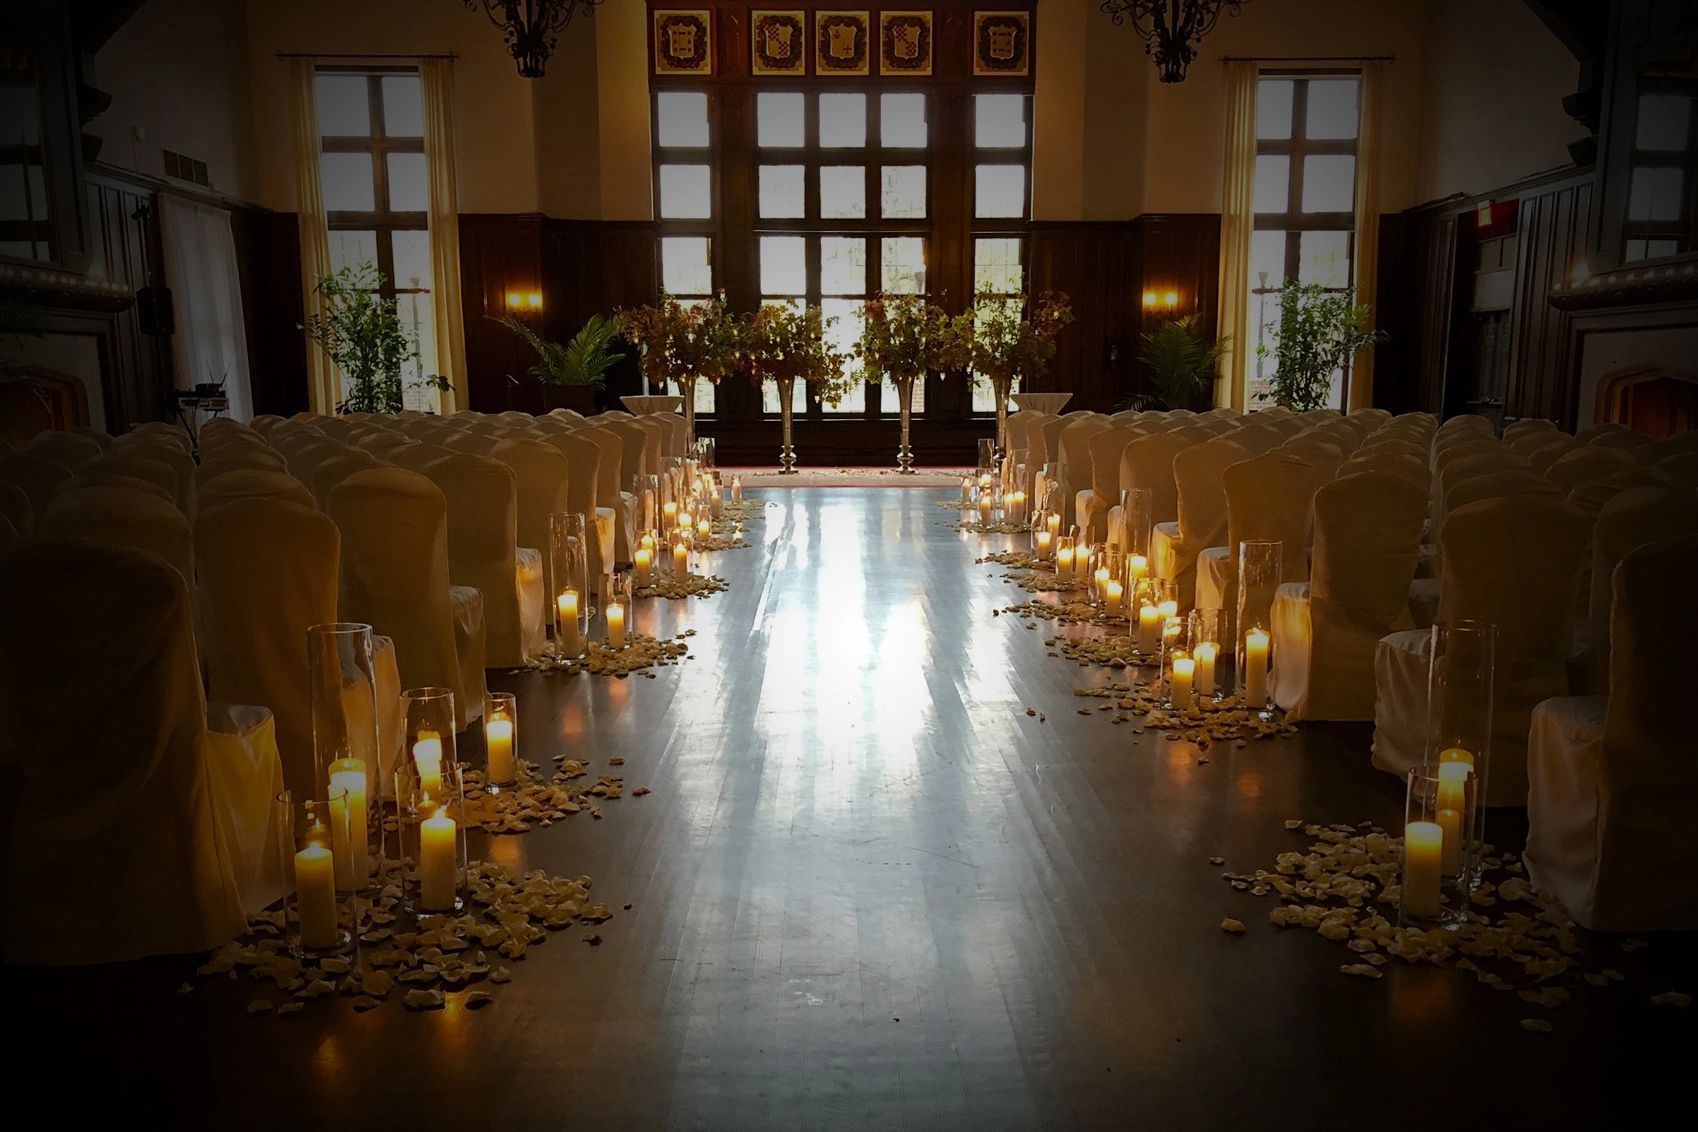 One Fine Day Ceremony Officiants Candlelit Aisle, Chicago Officiants, Romantic, Dream Ceremony